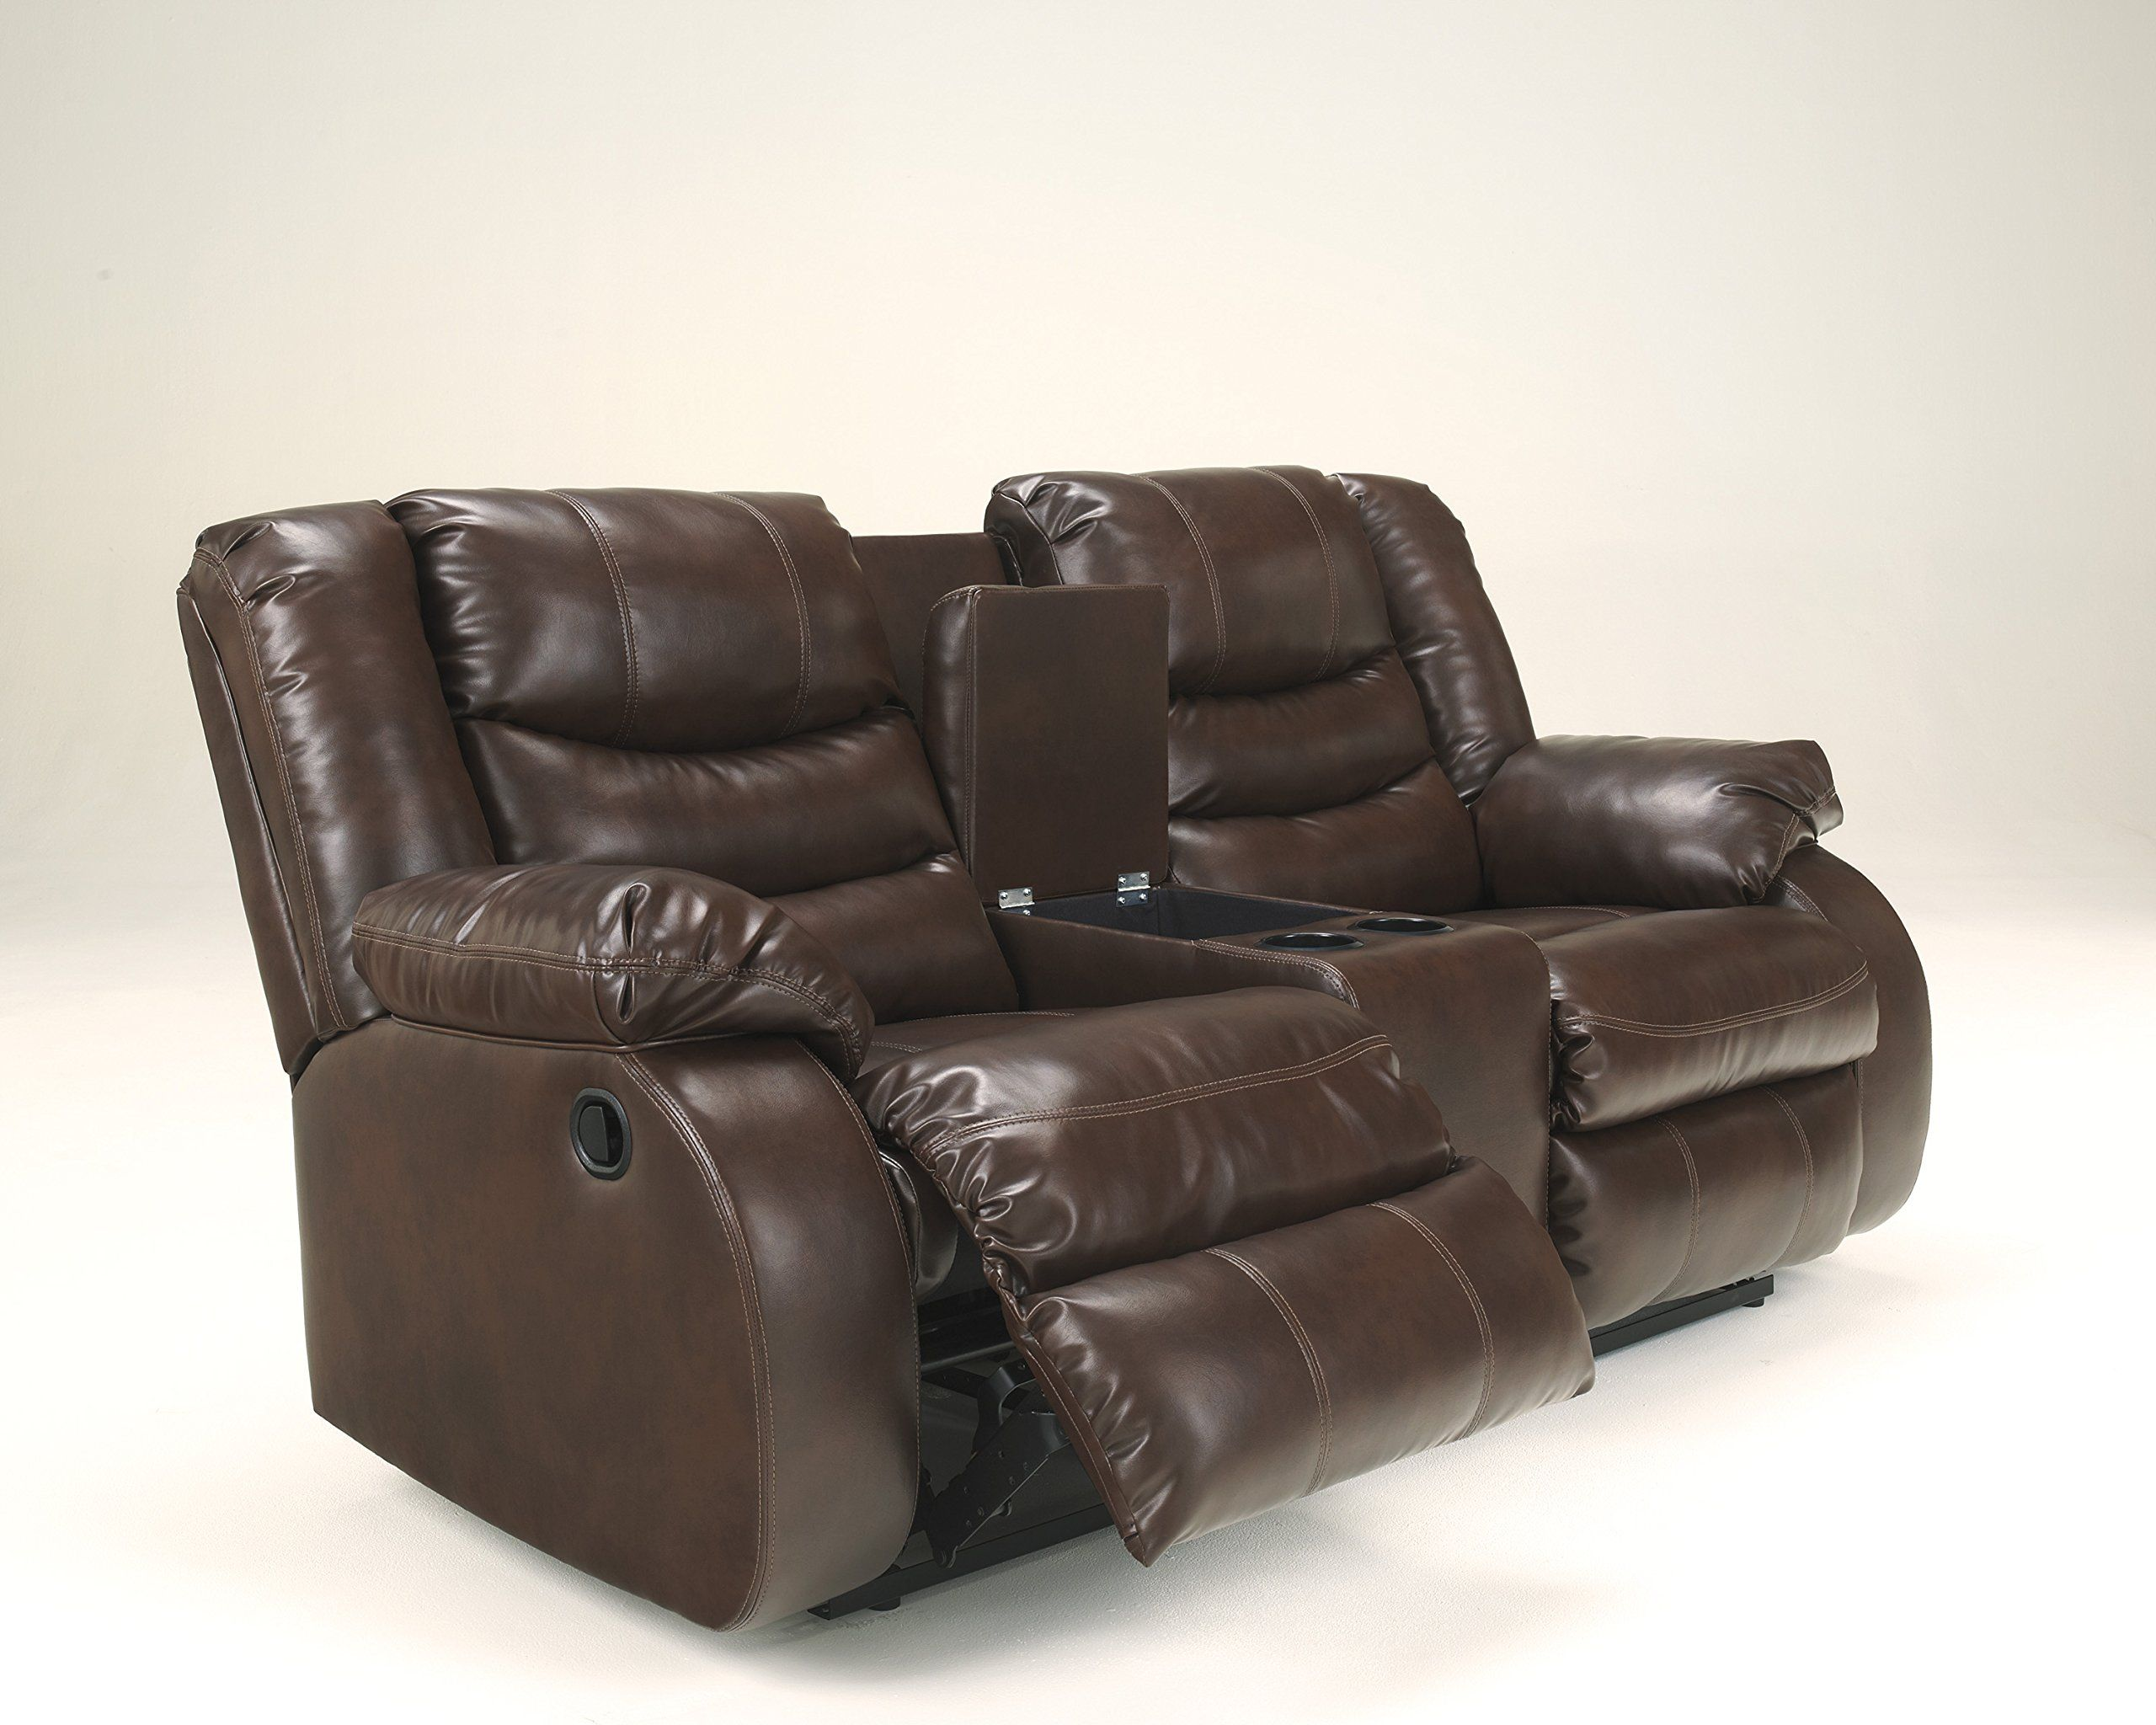 Linebacker Durablend Contemporary Espresso Color Leather Reclining Loveseat W Console Find Out More Evaluatio Love Seat Recliner Leather Reclining Loveseat